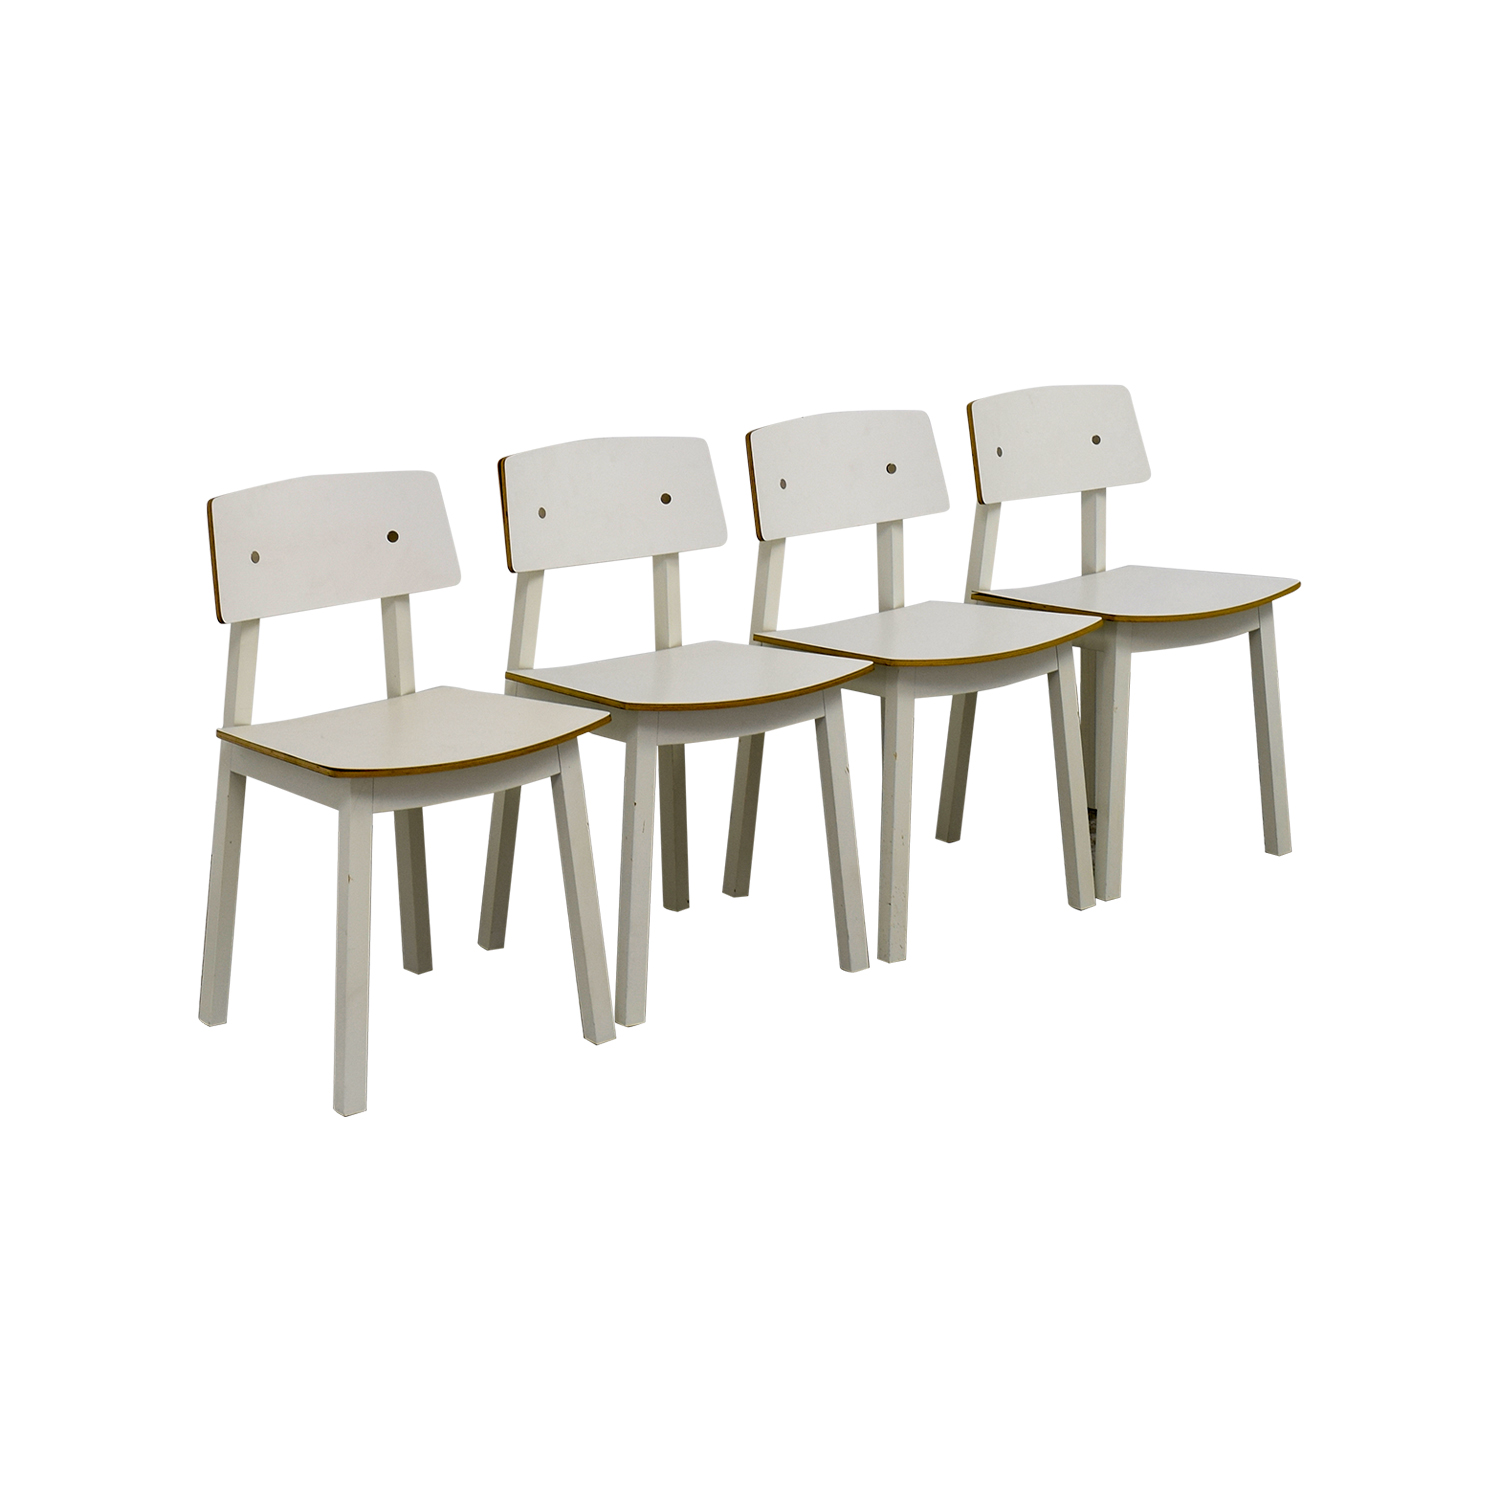 63 off ikea ikea white dining chairs chairs for Ikea dining sets usa